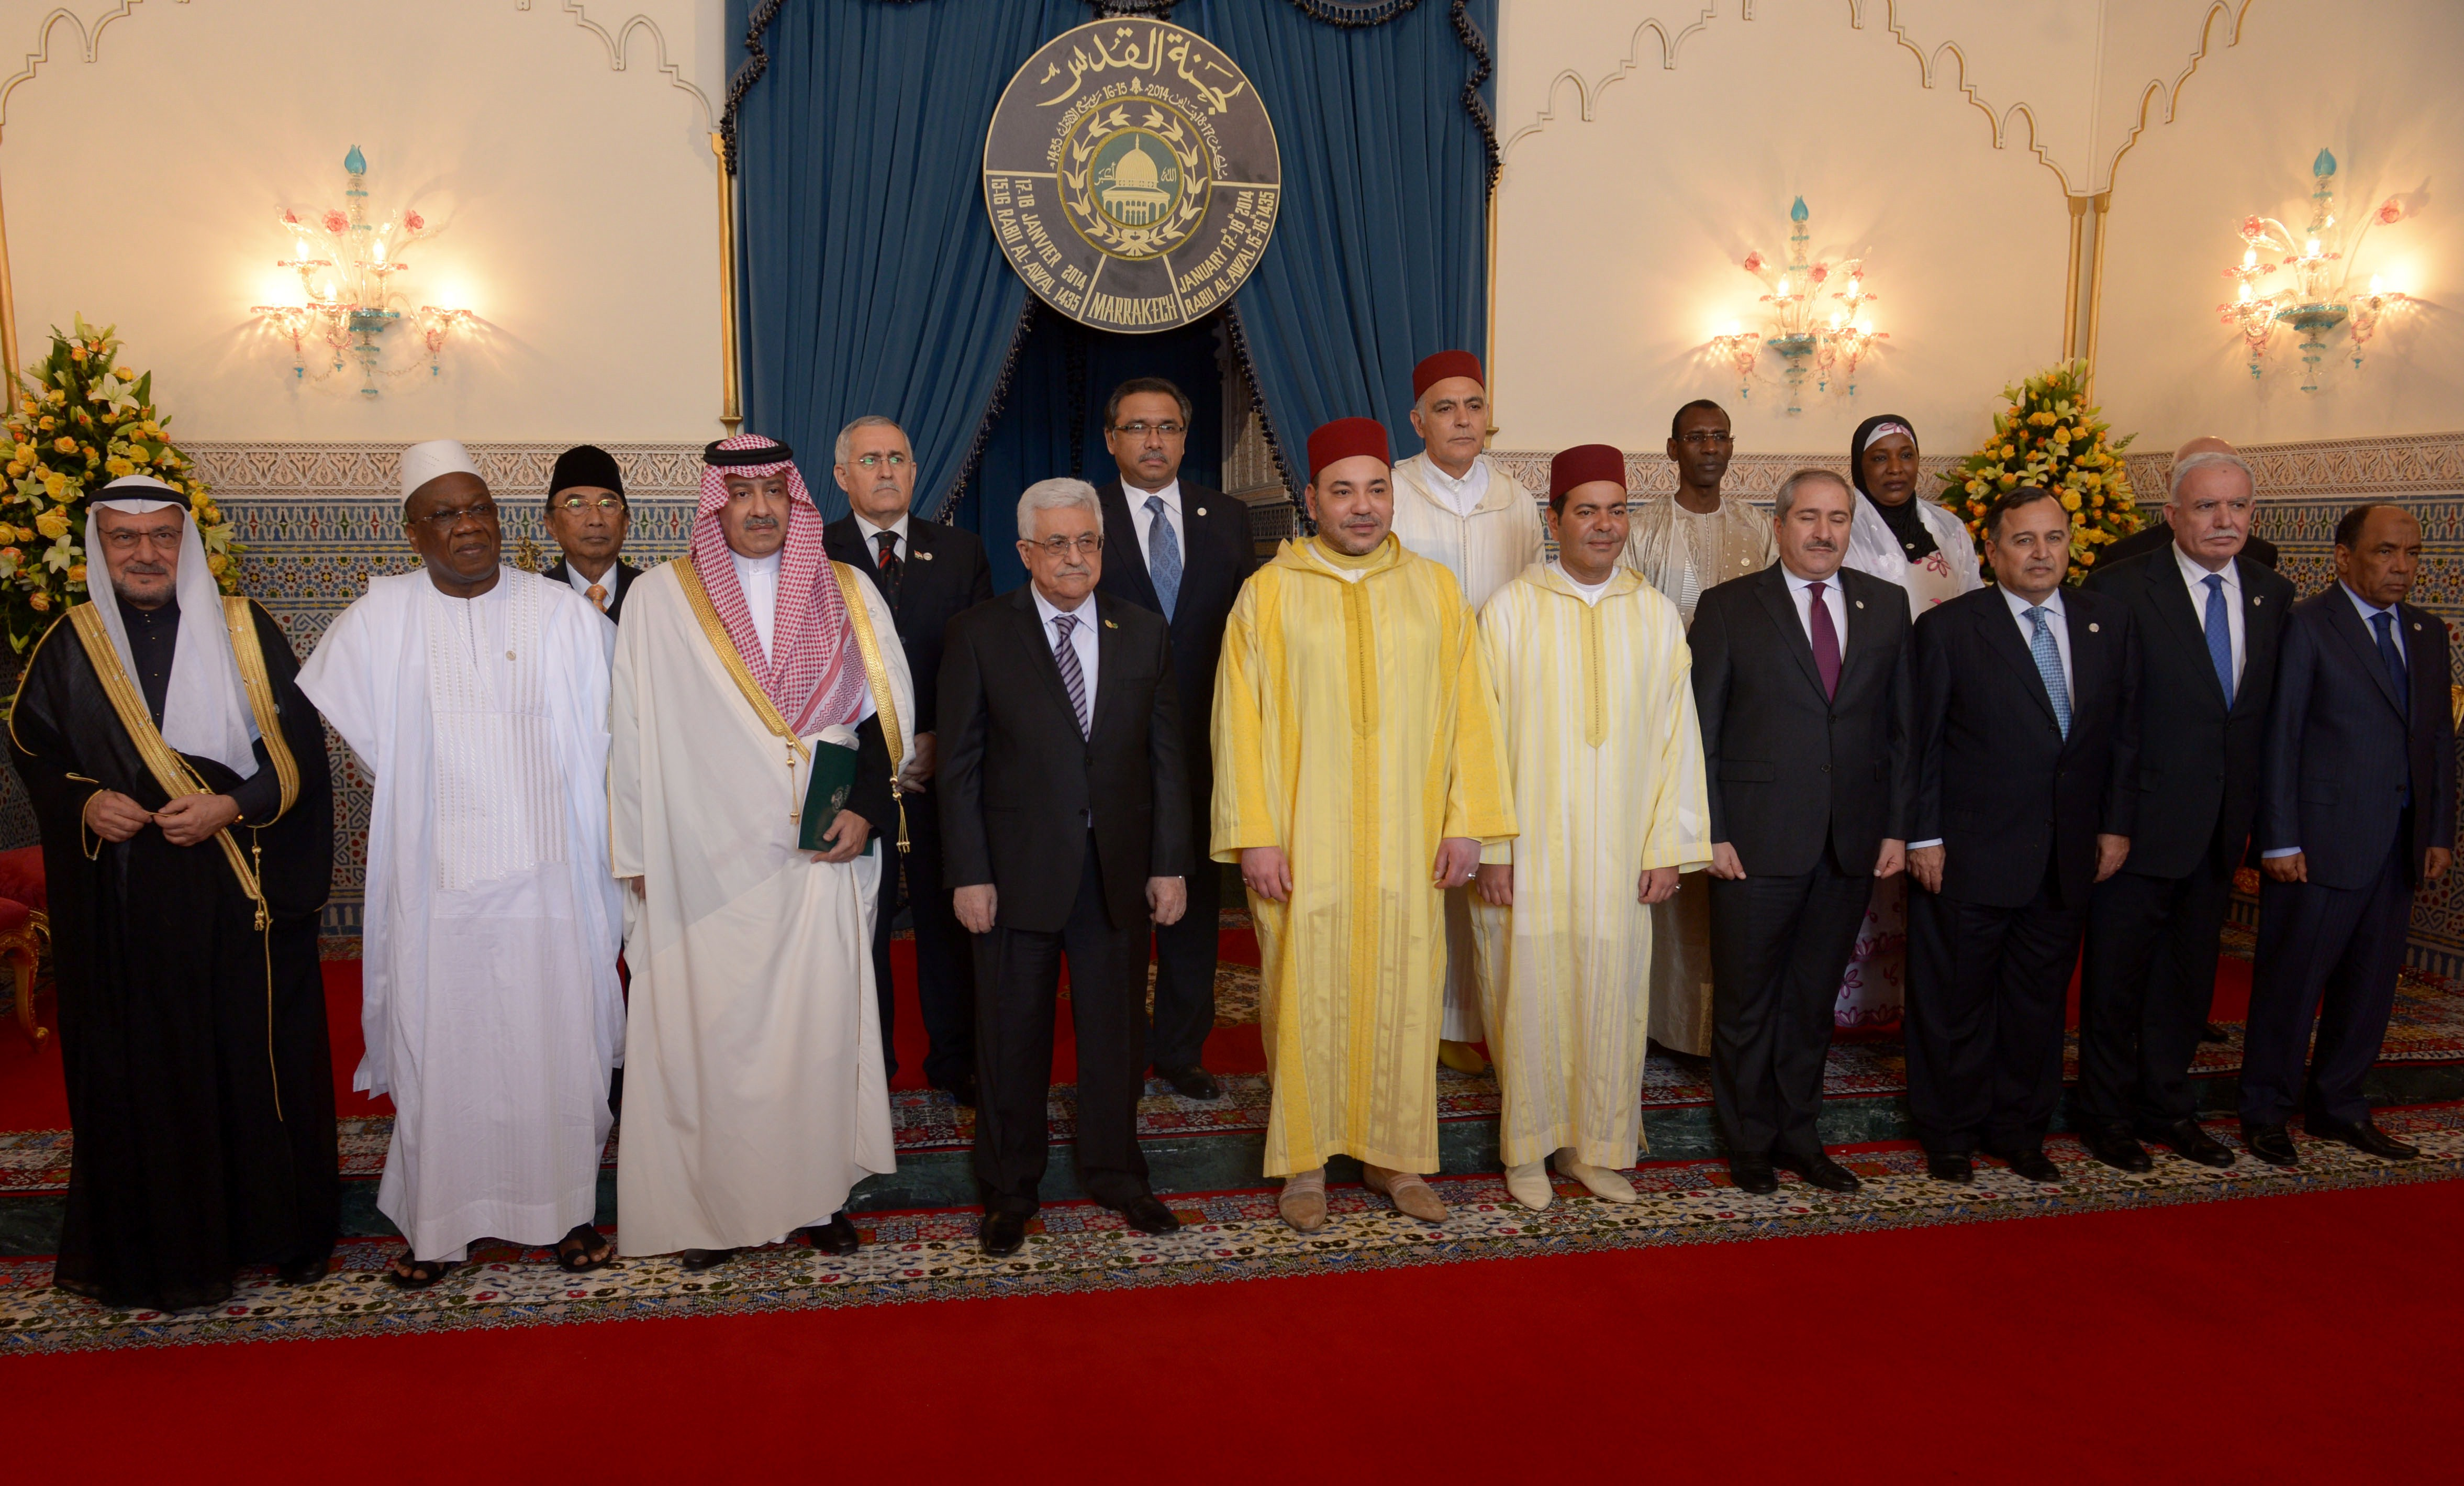 The Moroccan King Mohammed VI (5th from L) poses for a family picture next to Palestinian Authority president Mahmud Abbas (4th from L) at the royal palace during the al-Quds (meaning Jerusalem) Committee Meeting in Support of Middle East Peace Process on January 17, 2014 in Marrakesh. At least 15 representatives from islamic countries are expected to atten this 20th edition that was set up in 1975 to preserve Jerusalem heritage sites.    (AFP PHOTO / FADEL SENNA)